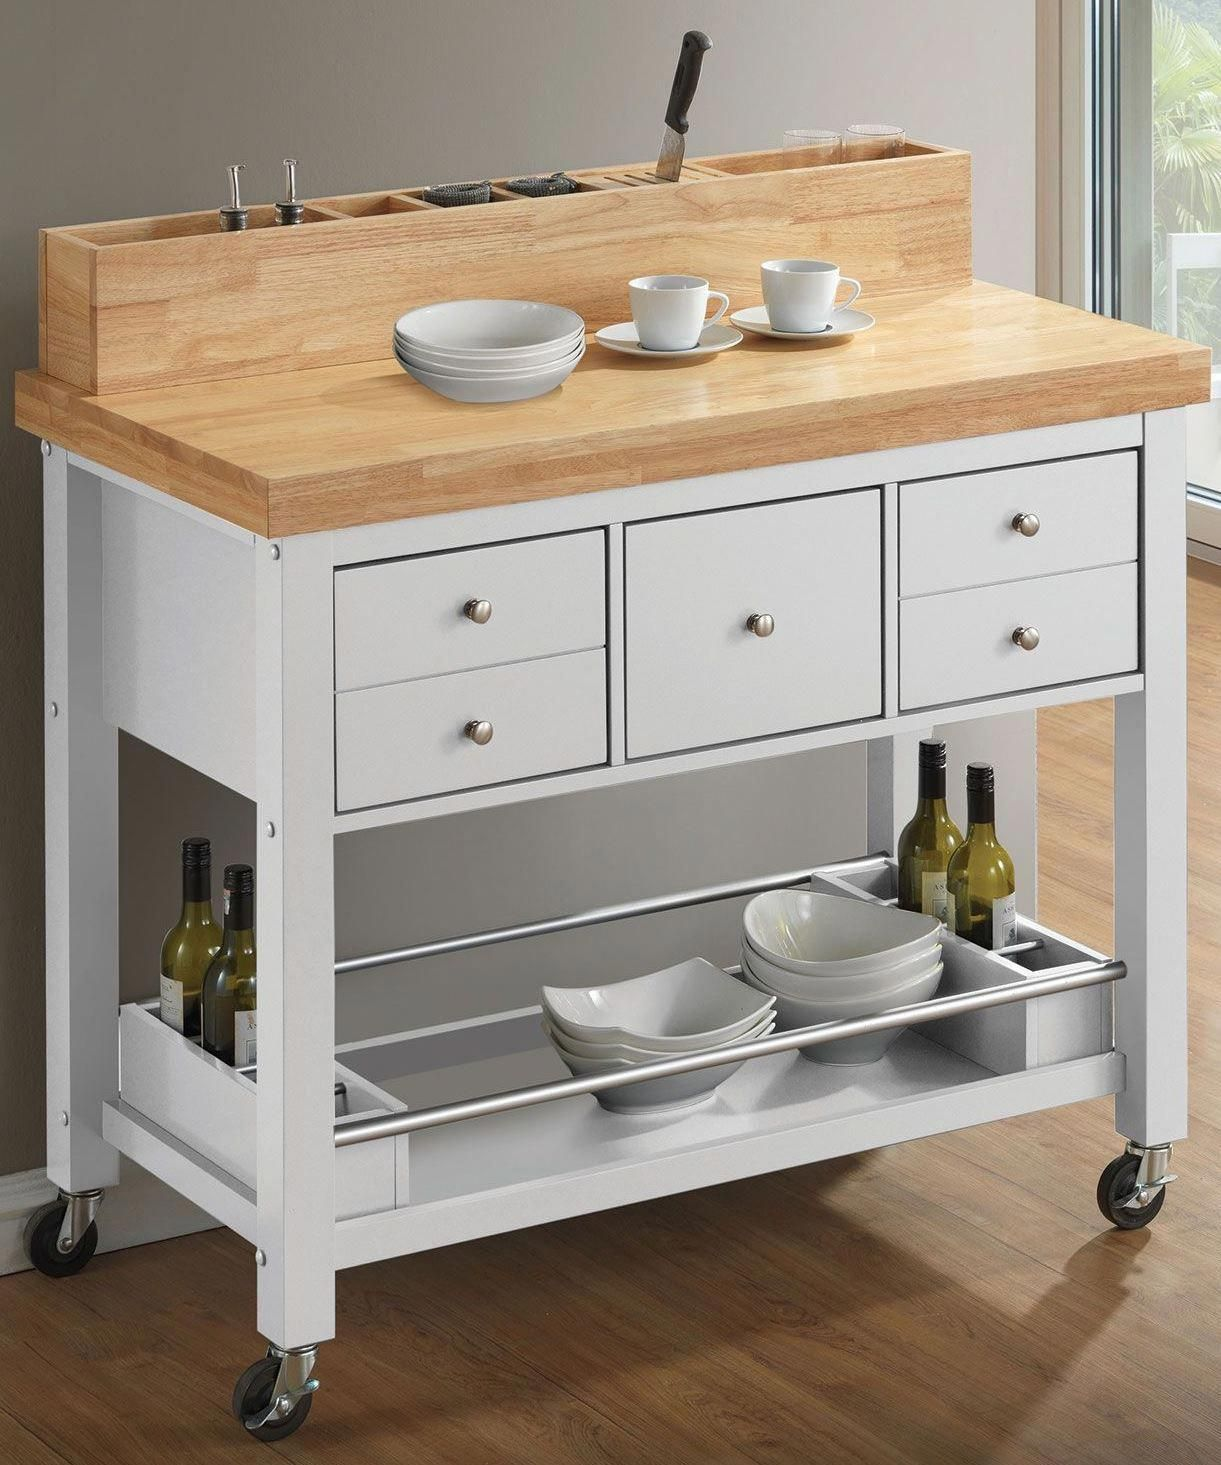 Natural and white kitchen cart by coaster is the perfect combination